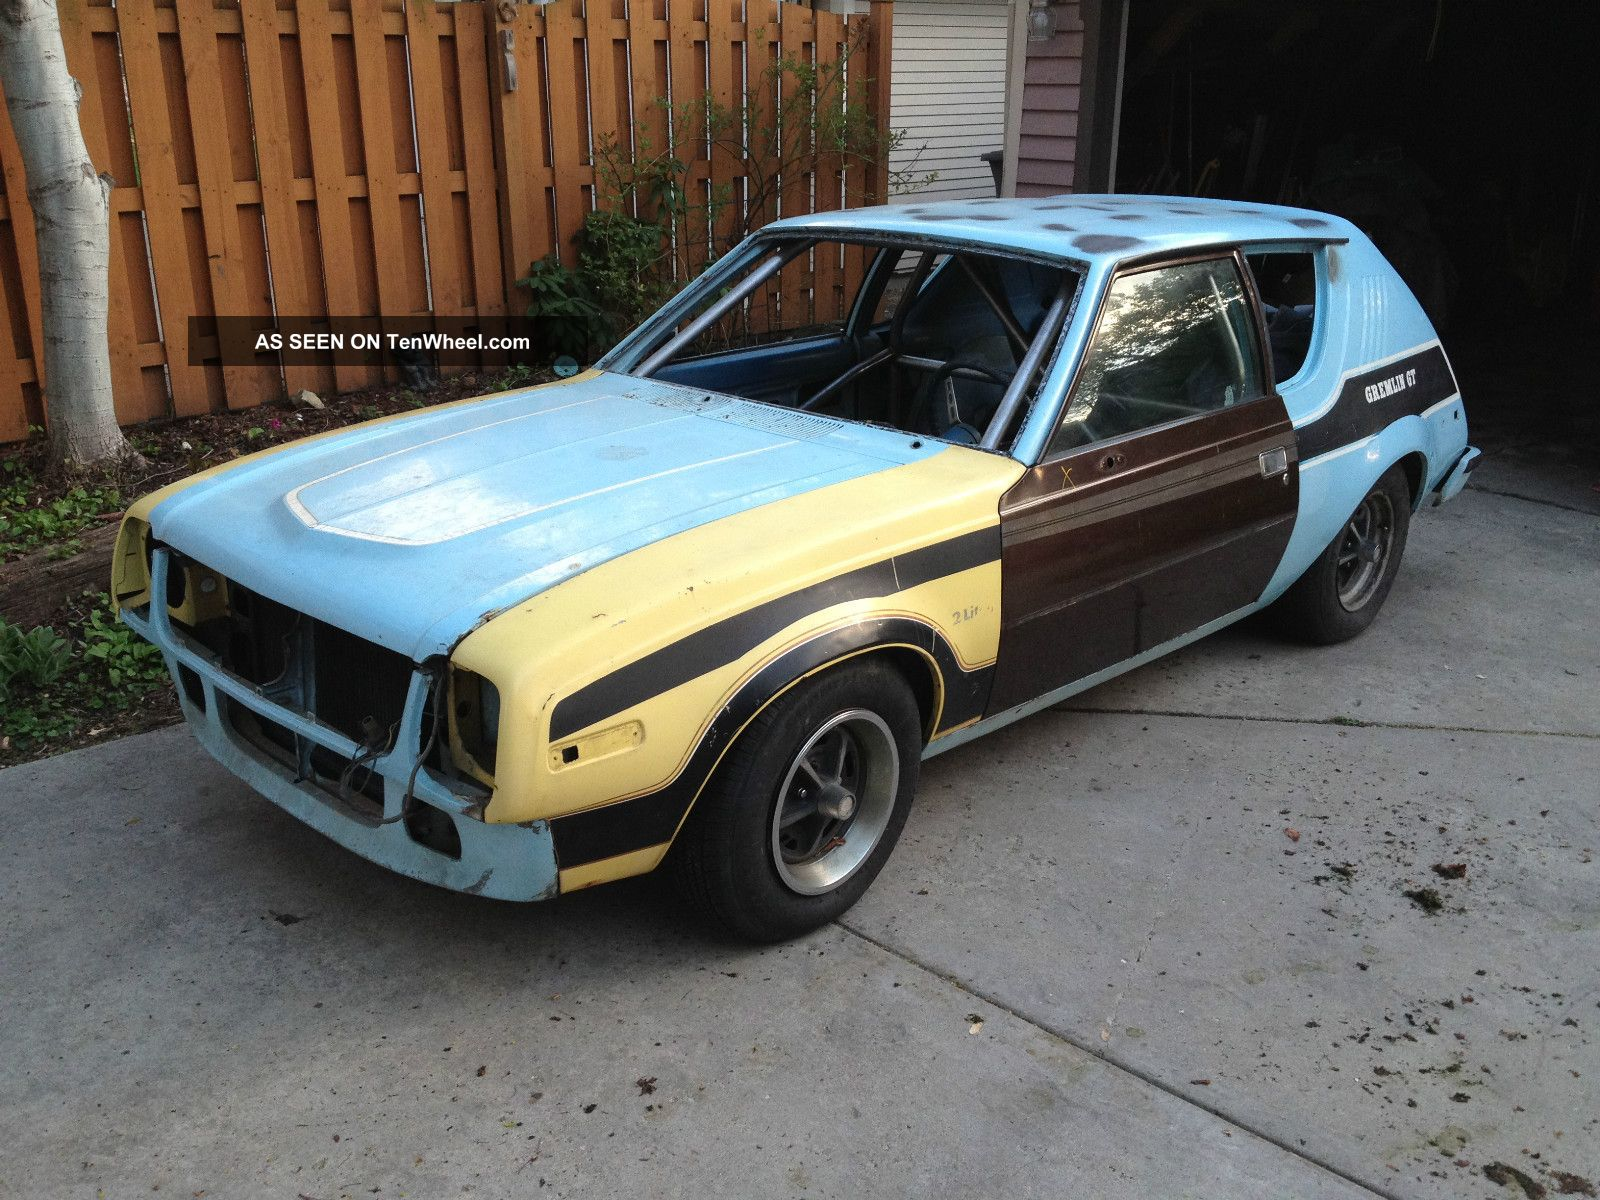 1978 Amc Gremlin - - - Originally California Car AMC photo